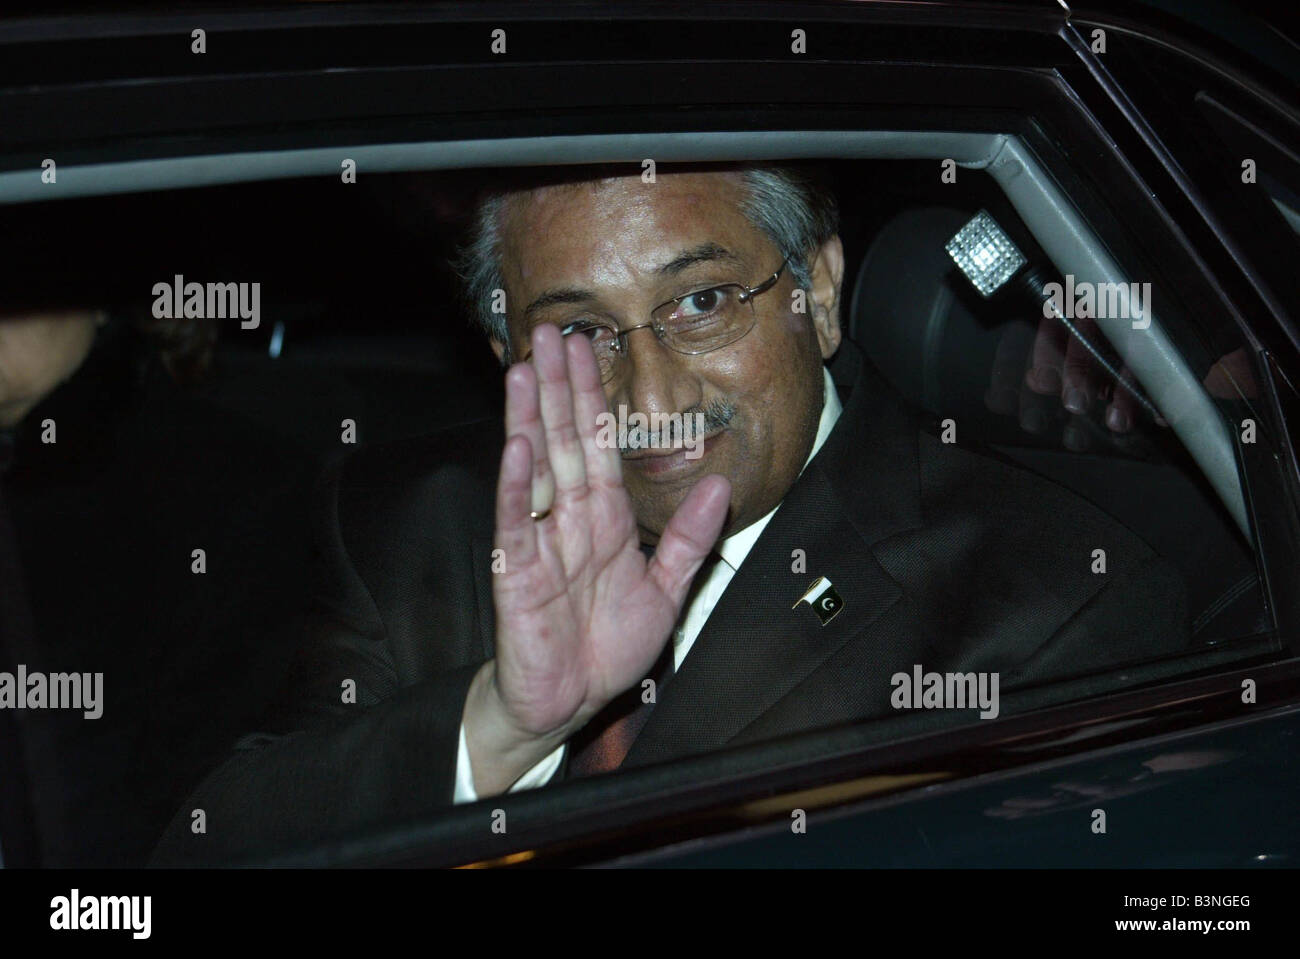 Pakistan President Musharraf leaves Manchester surrounded by tight security December 2004 - Stock Image